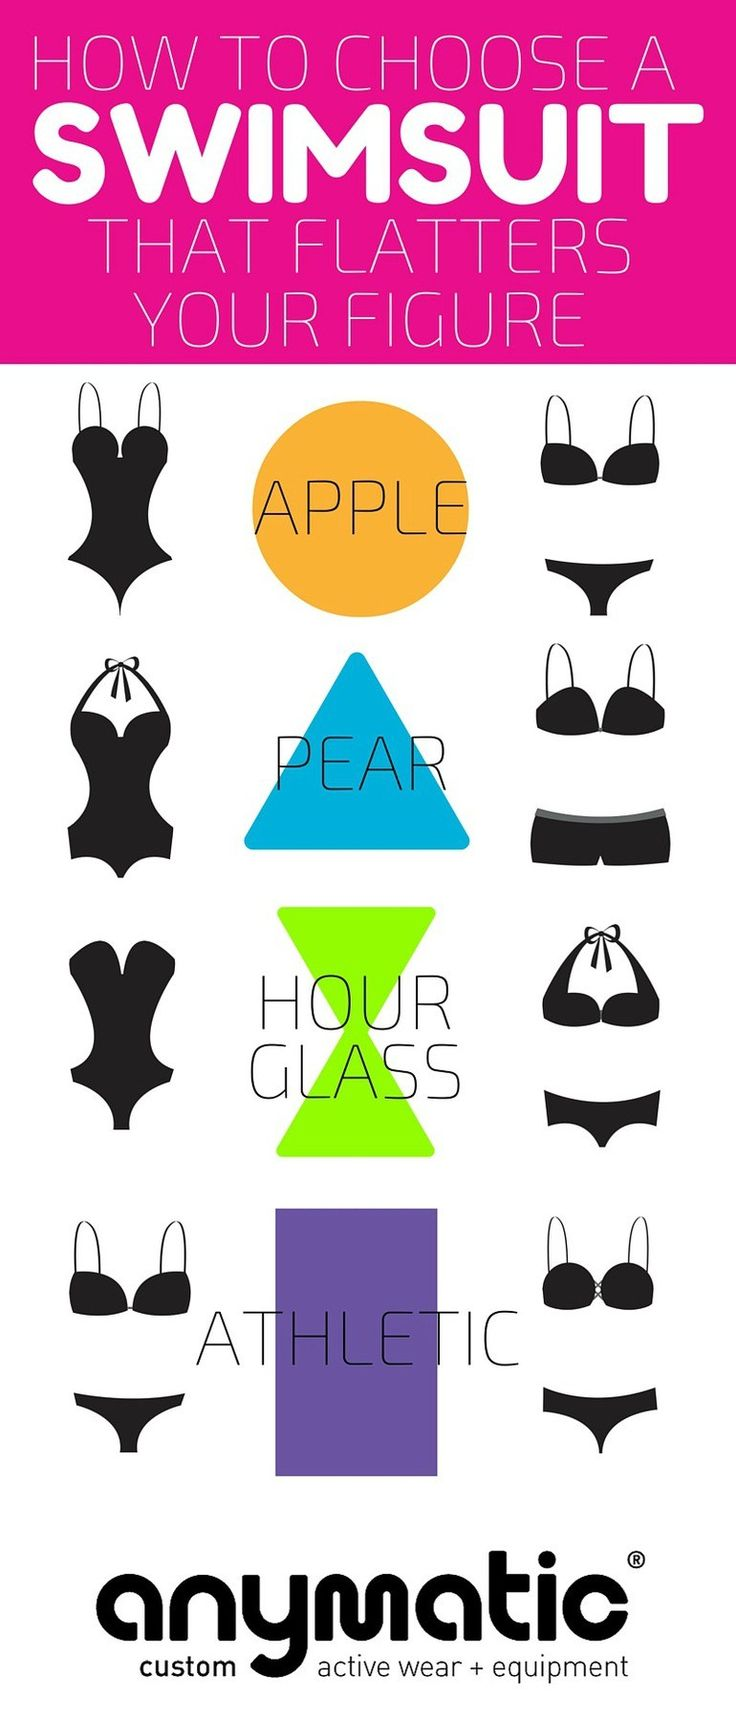 How to Choose a Swimsuit that Flatters Your Figure